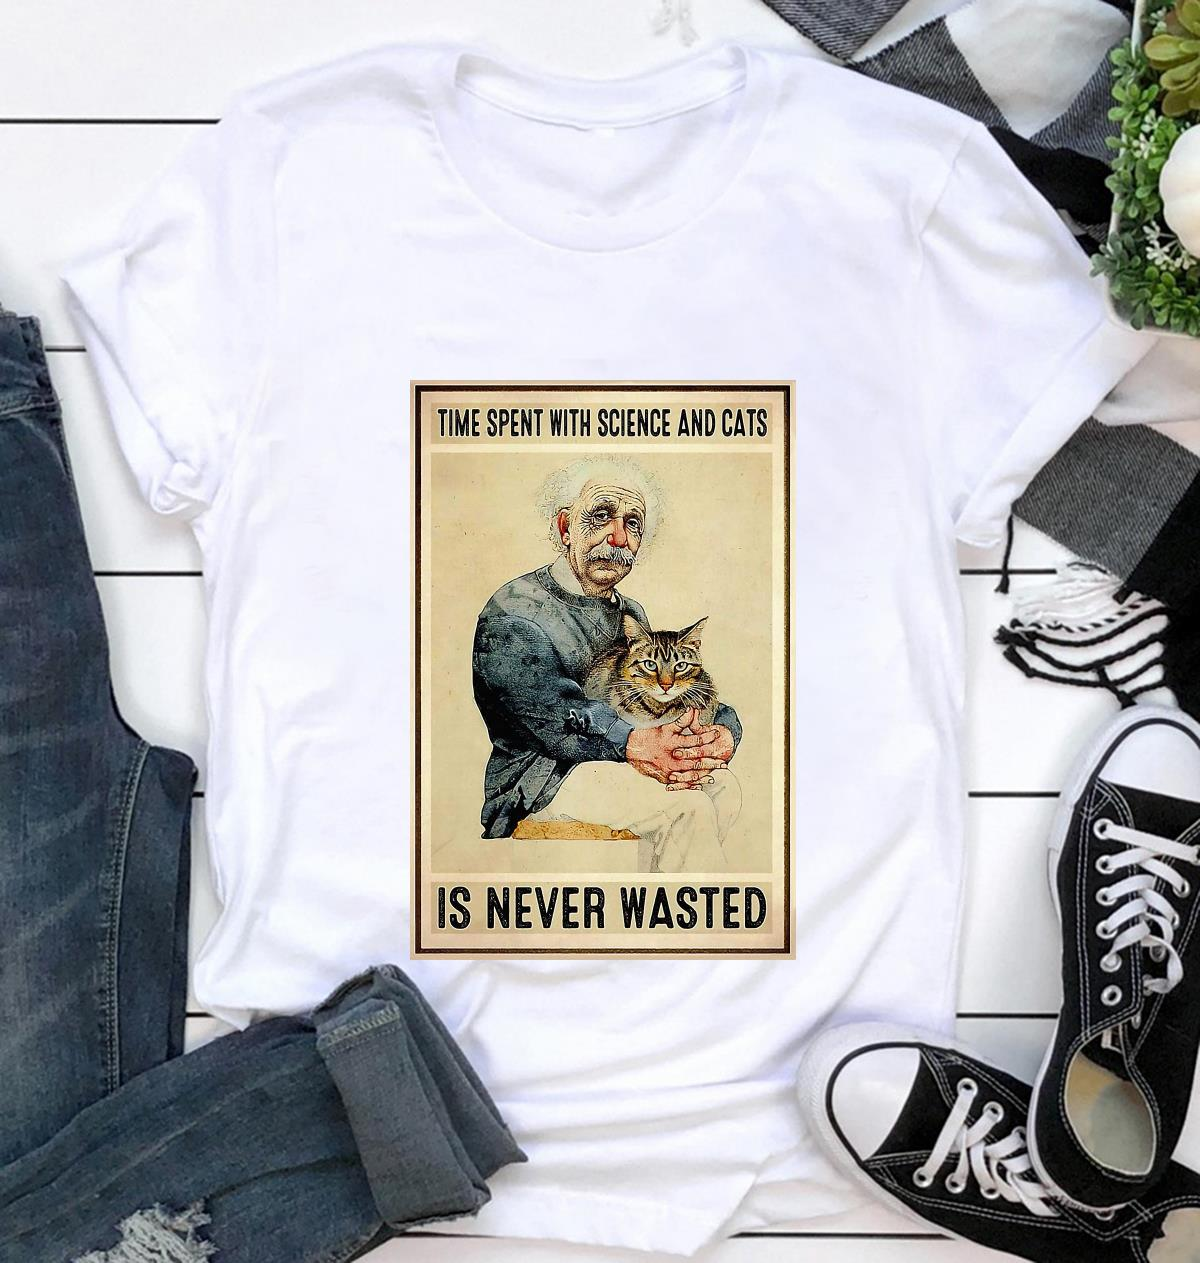 Time spent with science and cats is never wasted poster t-shirt